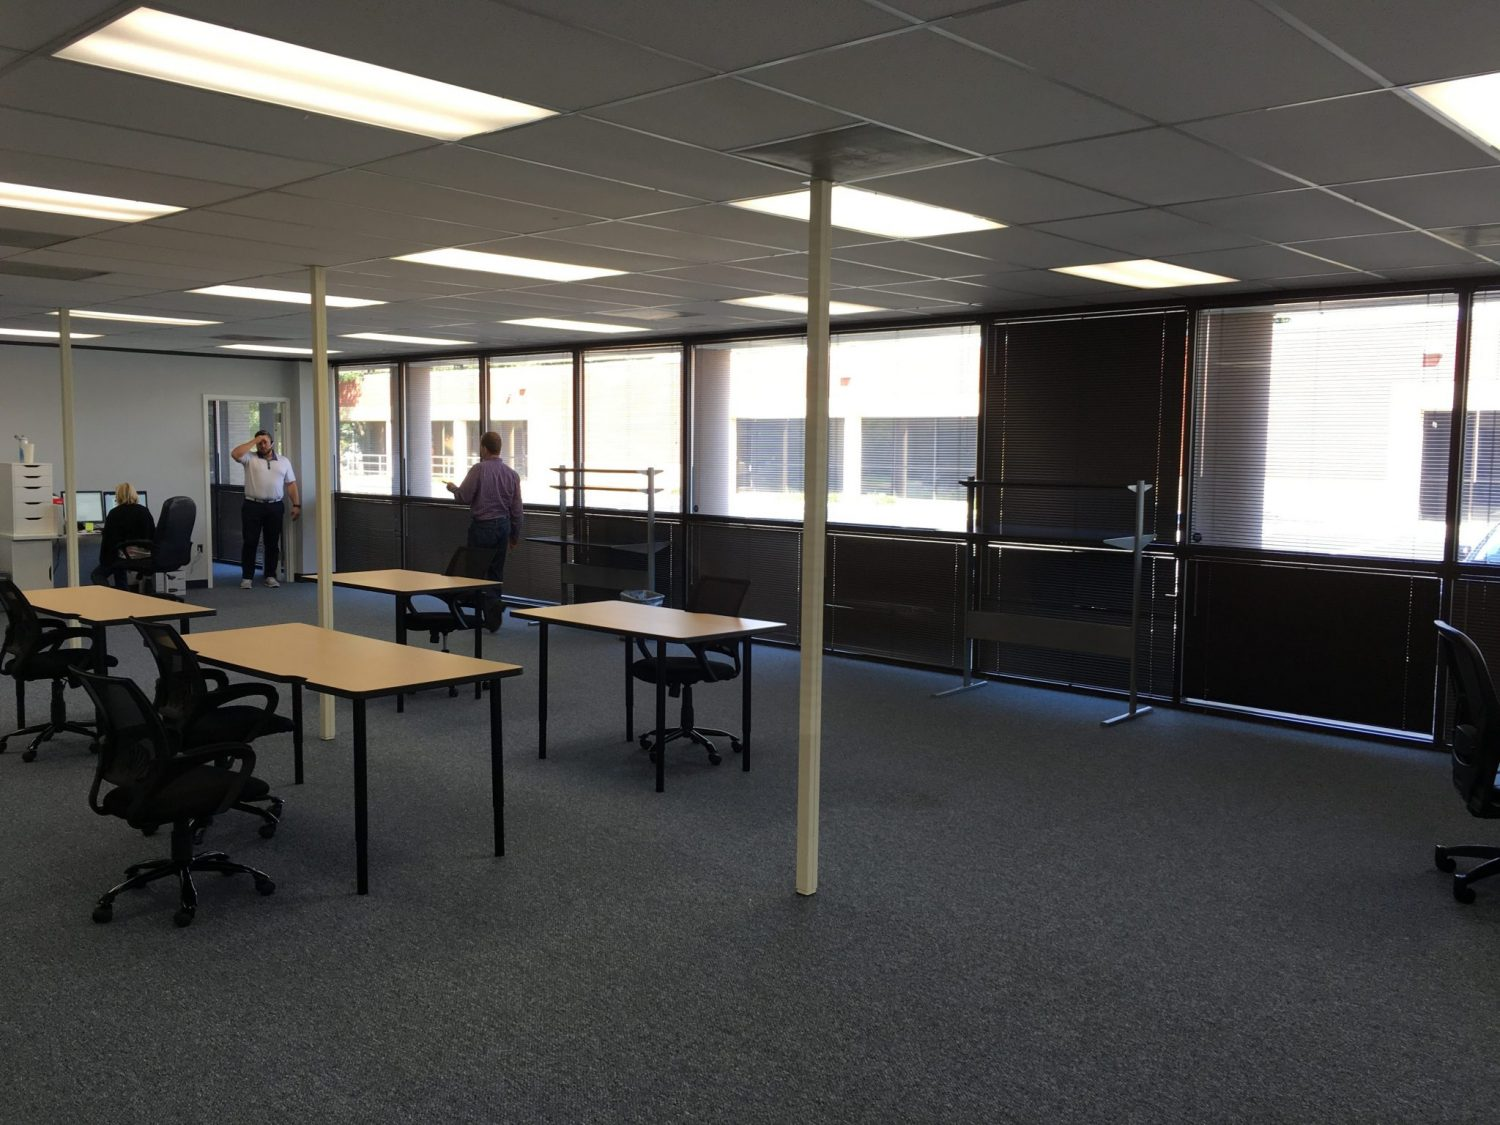 Alt.Biz brings coworking space to the MoRA area